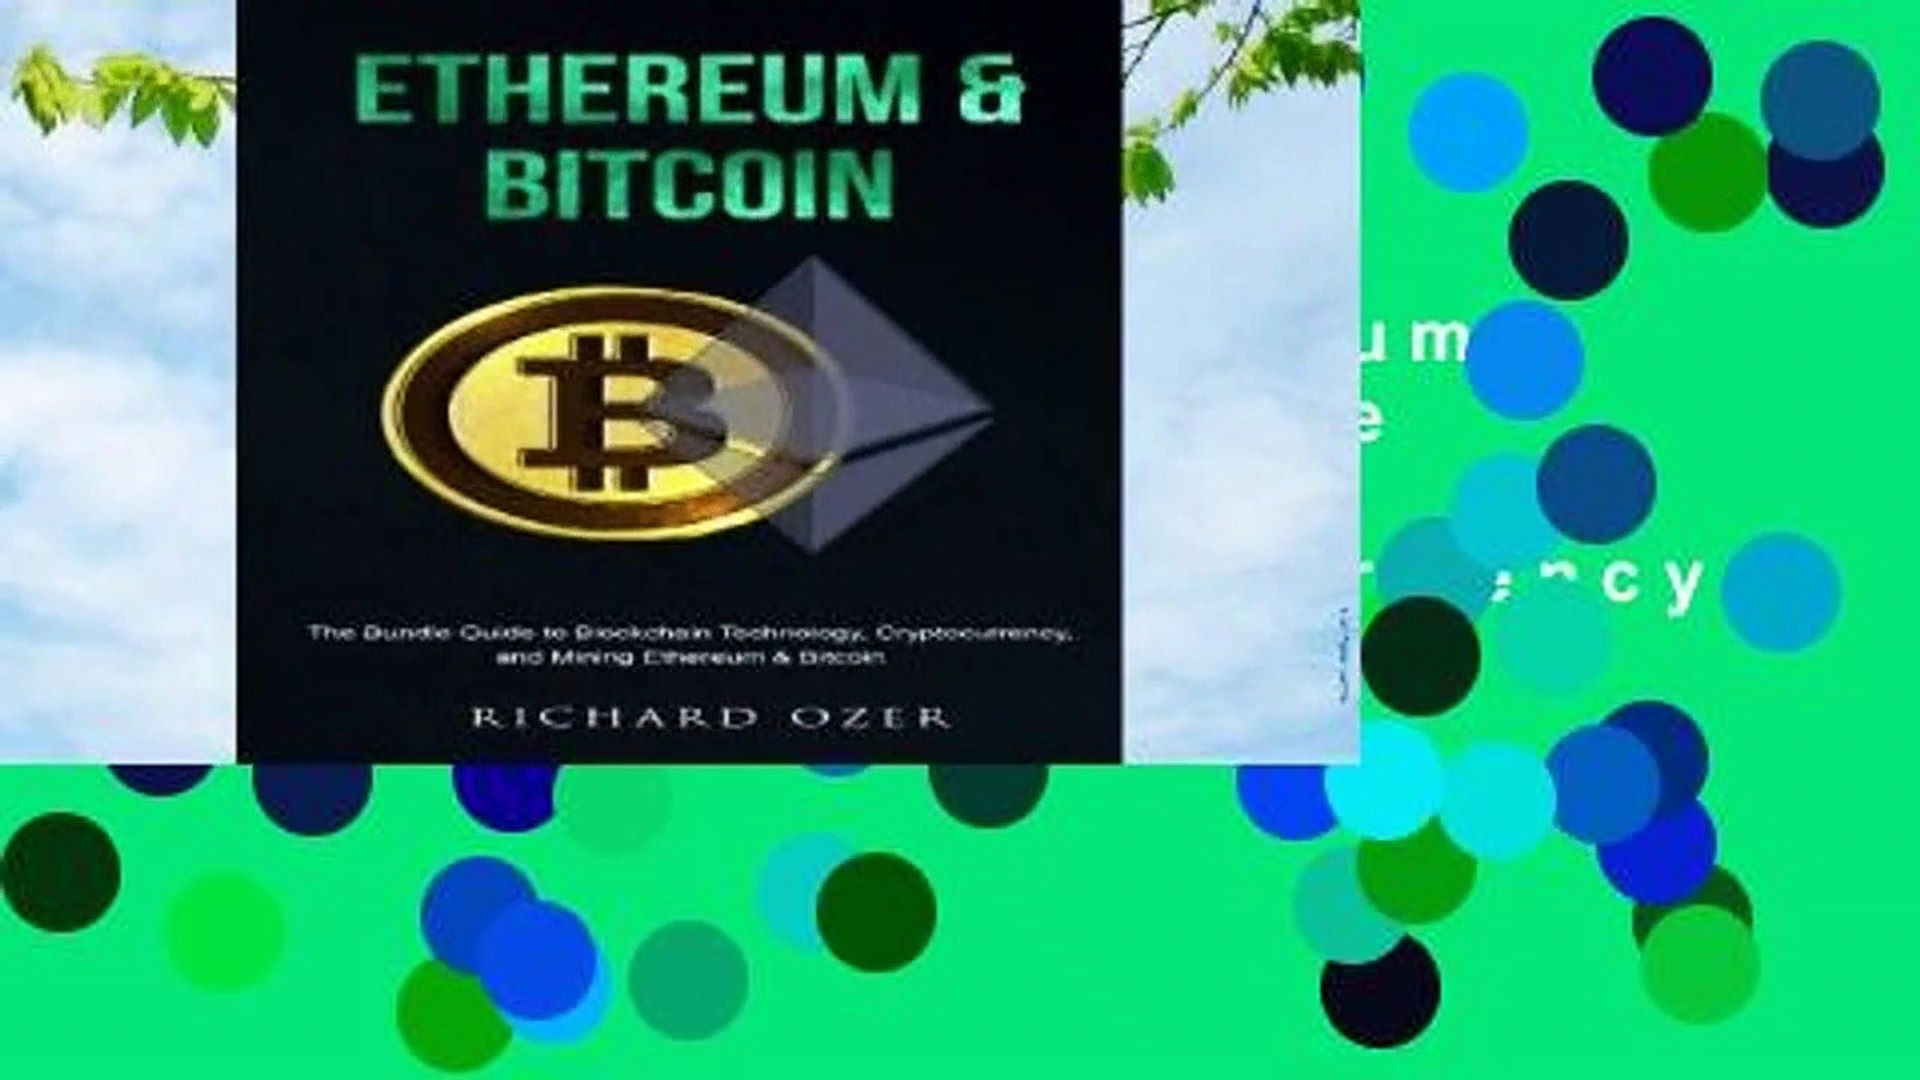 [GIFT IDEAS] Ethereum   Bitcoin: The Bundle Guide to Blockchain Technology, Cryptocurrency, and